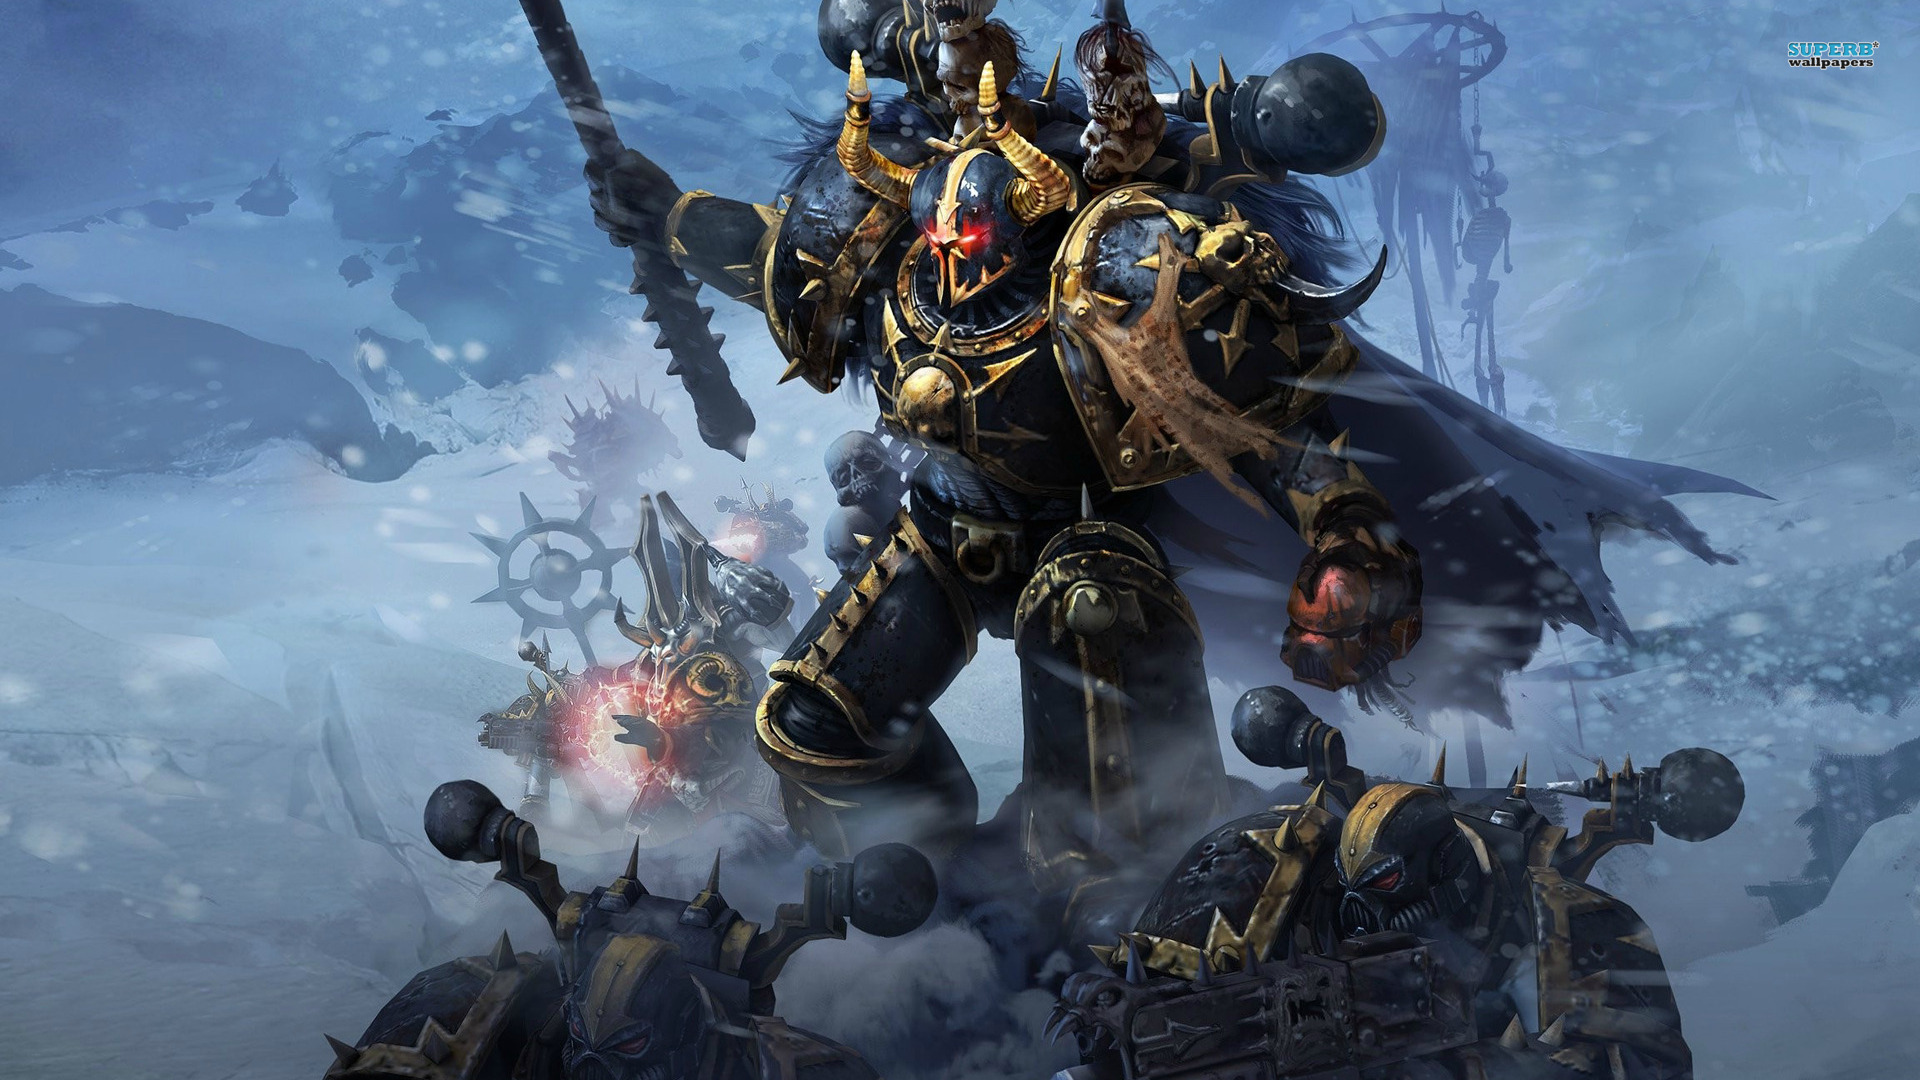 Chaos Space Marine Wallpaper - WallpaperSafari